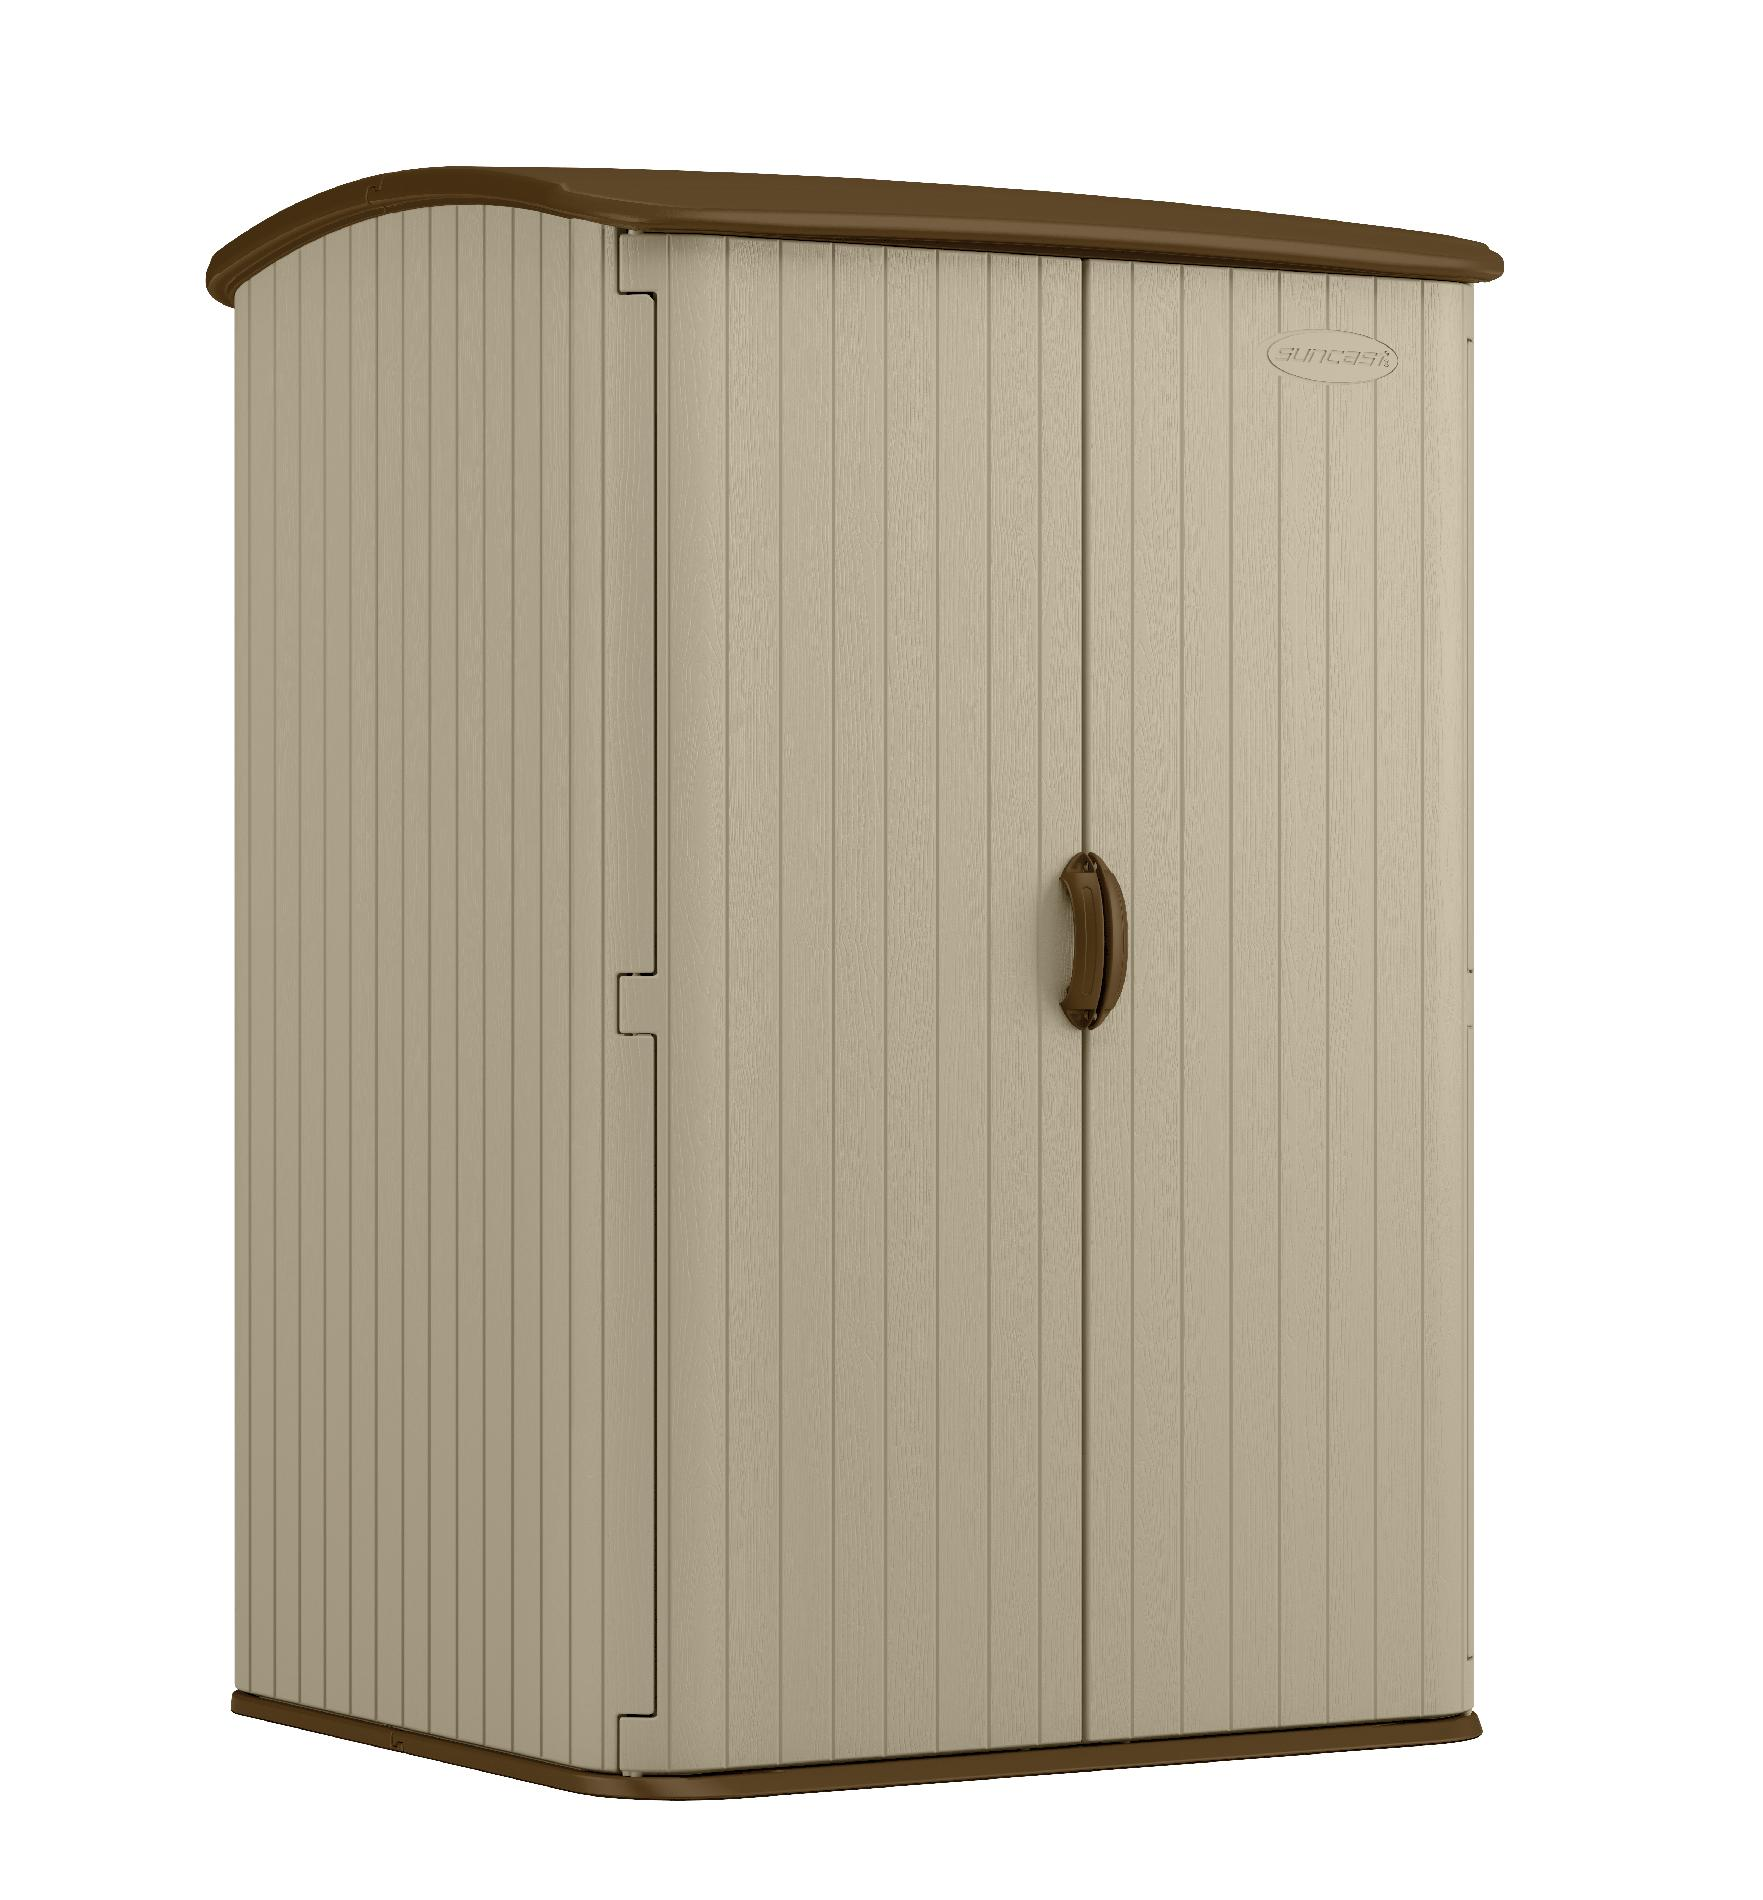 Suncast 98 Cuft Storage Shed Lawn Amp Garden Sheds